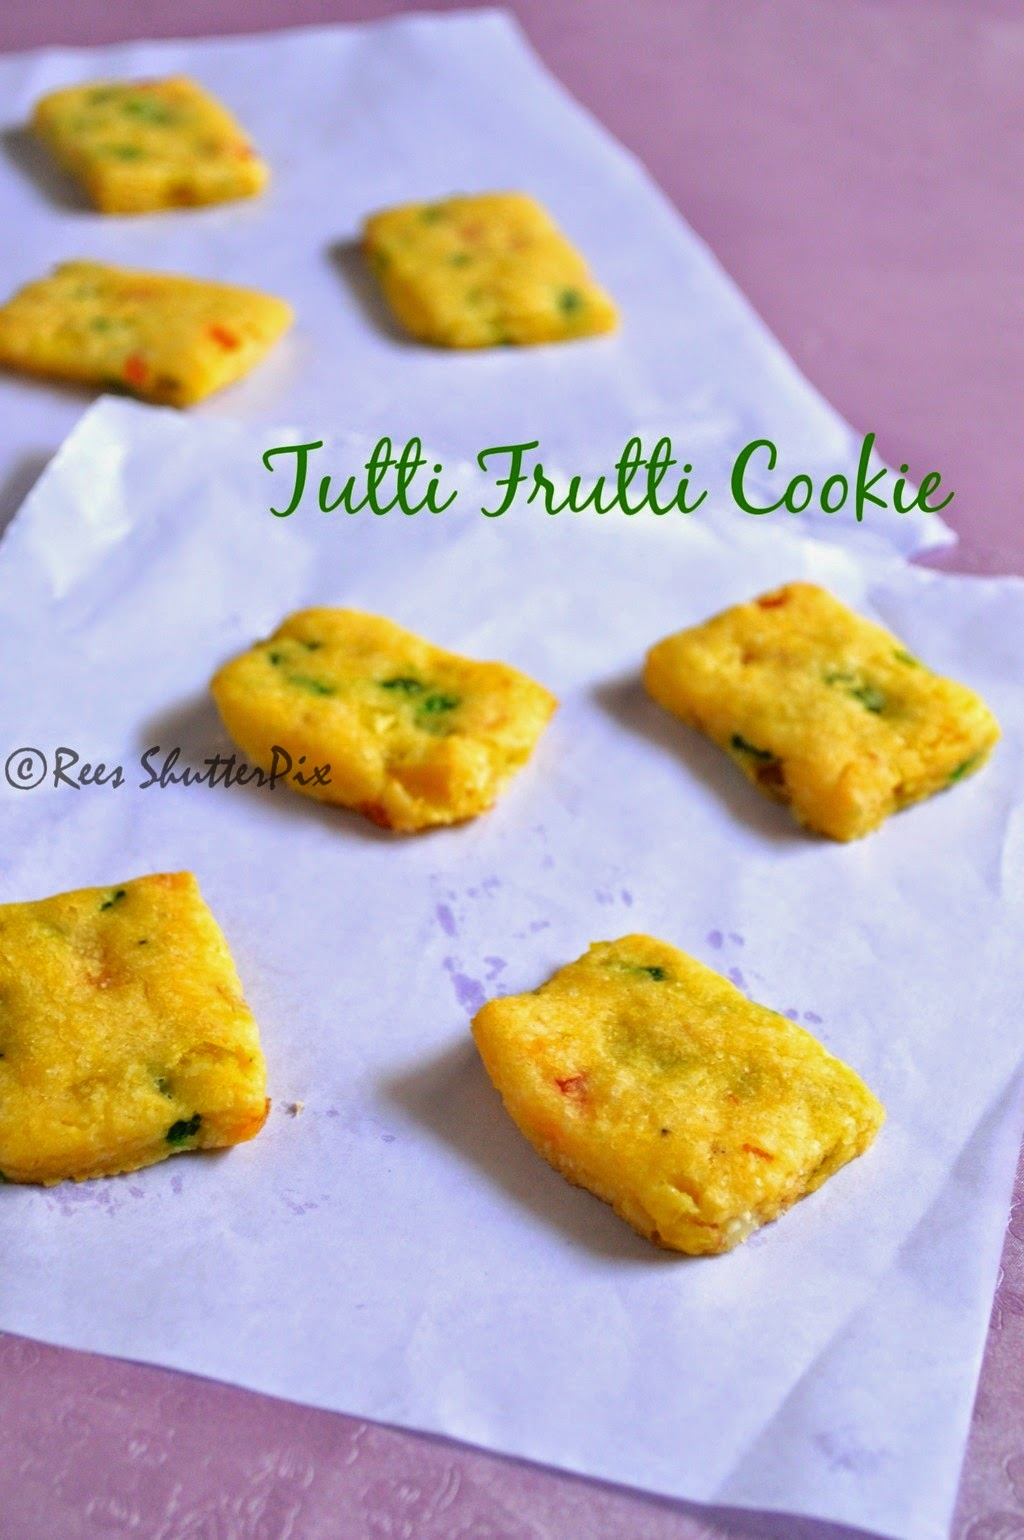 Cookie Recipe, Eggless Baking, Tutti Frutti Cookies Recipe, how to make tutti frutti cookies, easy cookie recipe, step wise pictures